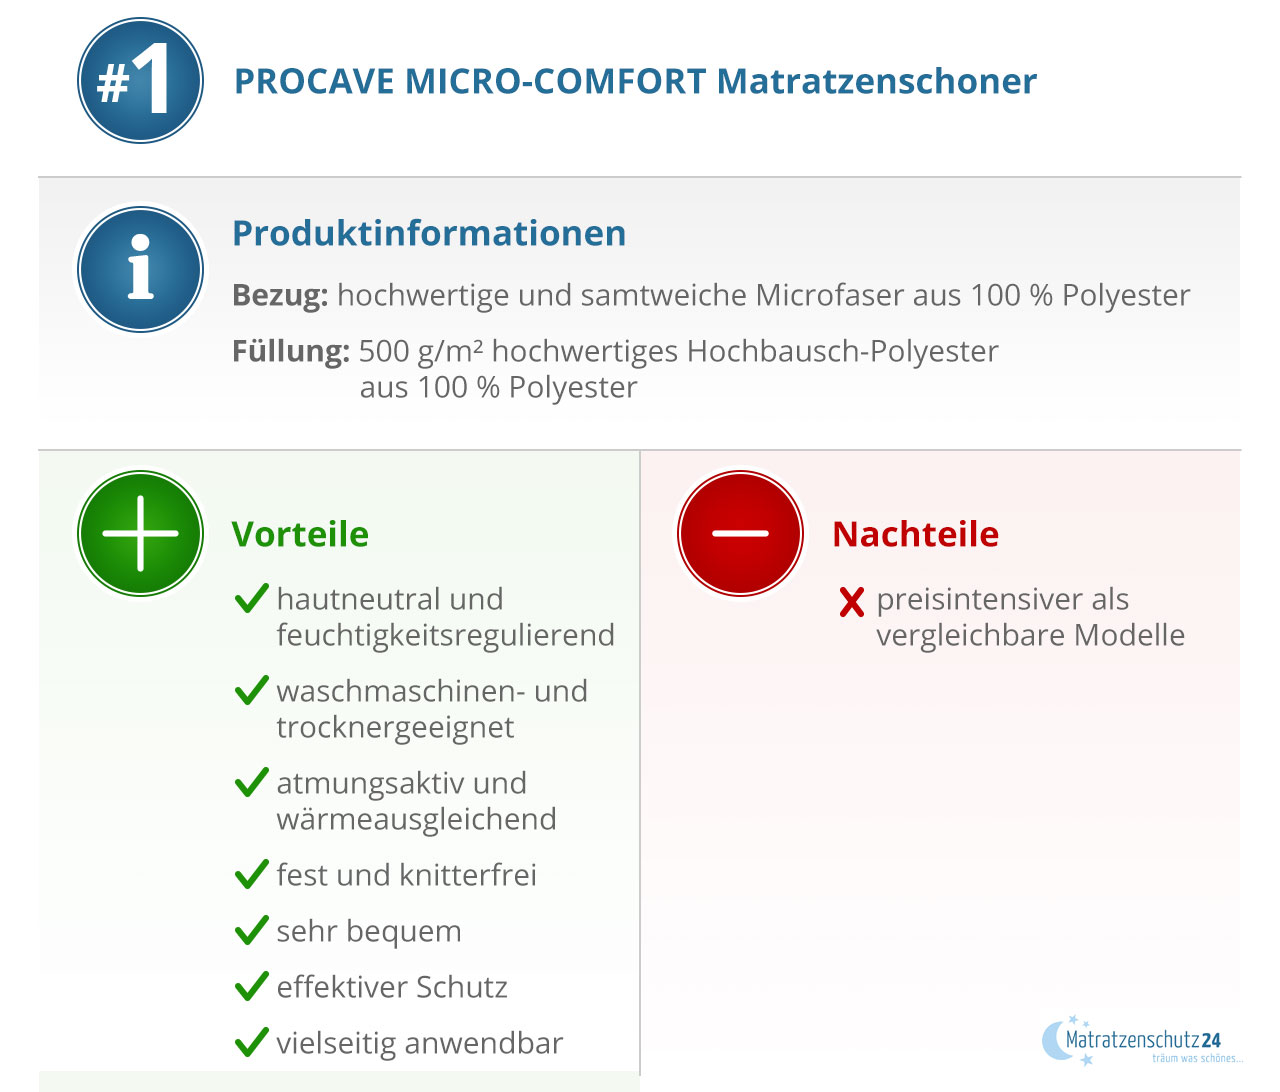 Produktionformation PROCAVE MICRO-COMFORT